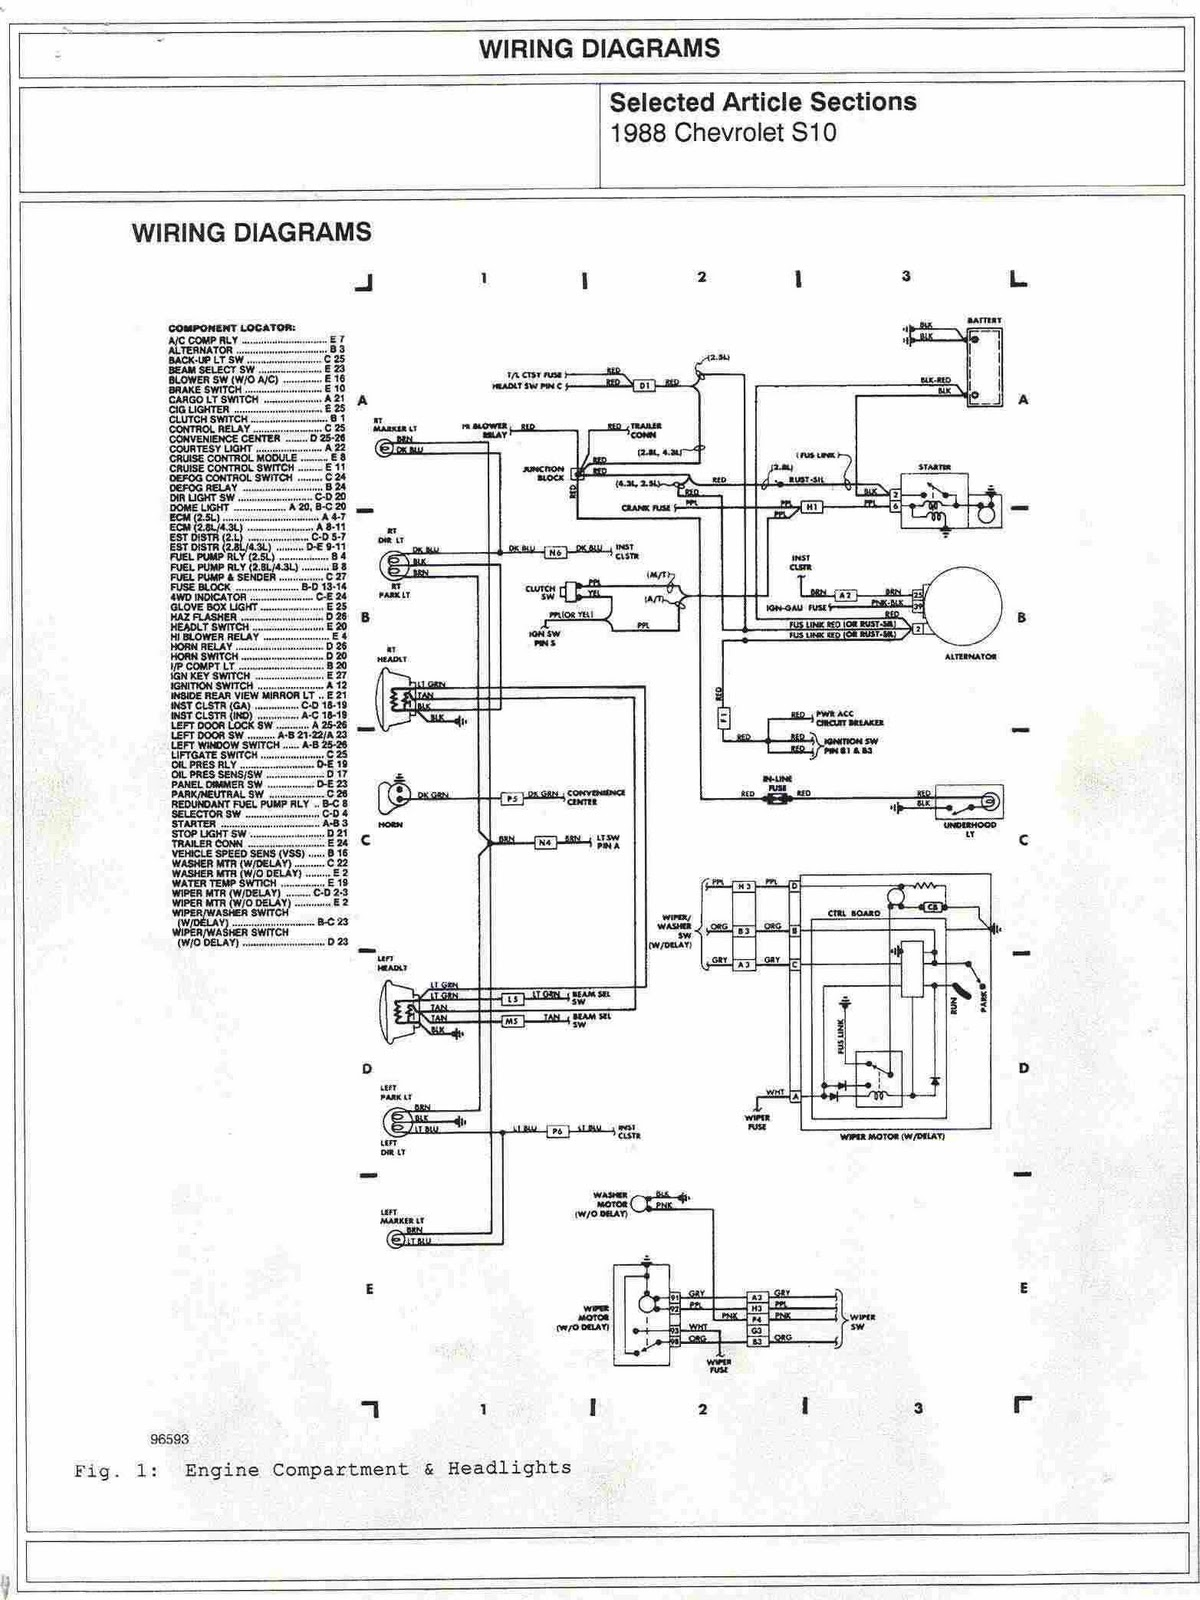 97 Deville Els Wire Diagramels 1997 Cadillac Wiring Diagrams 1988 Chevrolet S10 Engine Compartment And Headlights